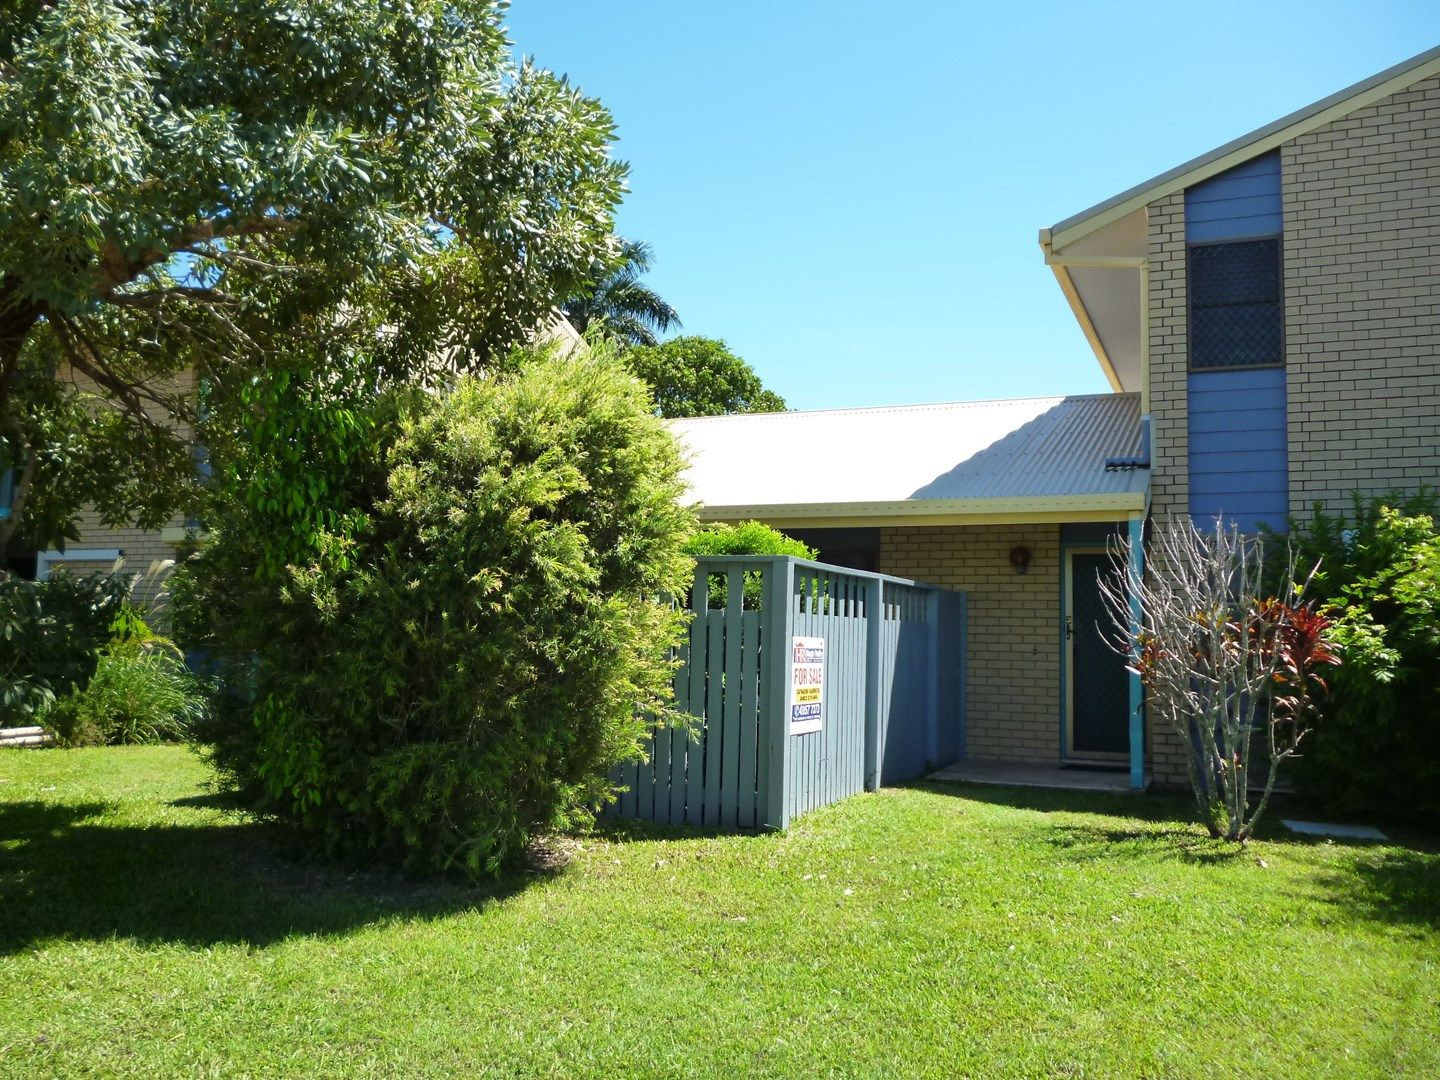 3/365 Bridge Rd, West Mackay QLD 4740, Image 0